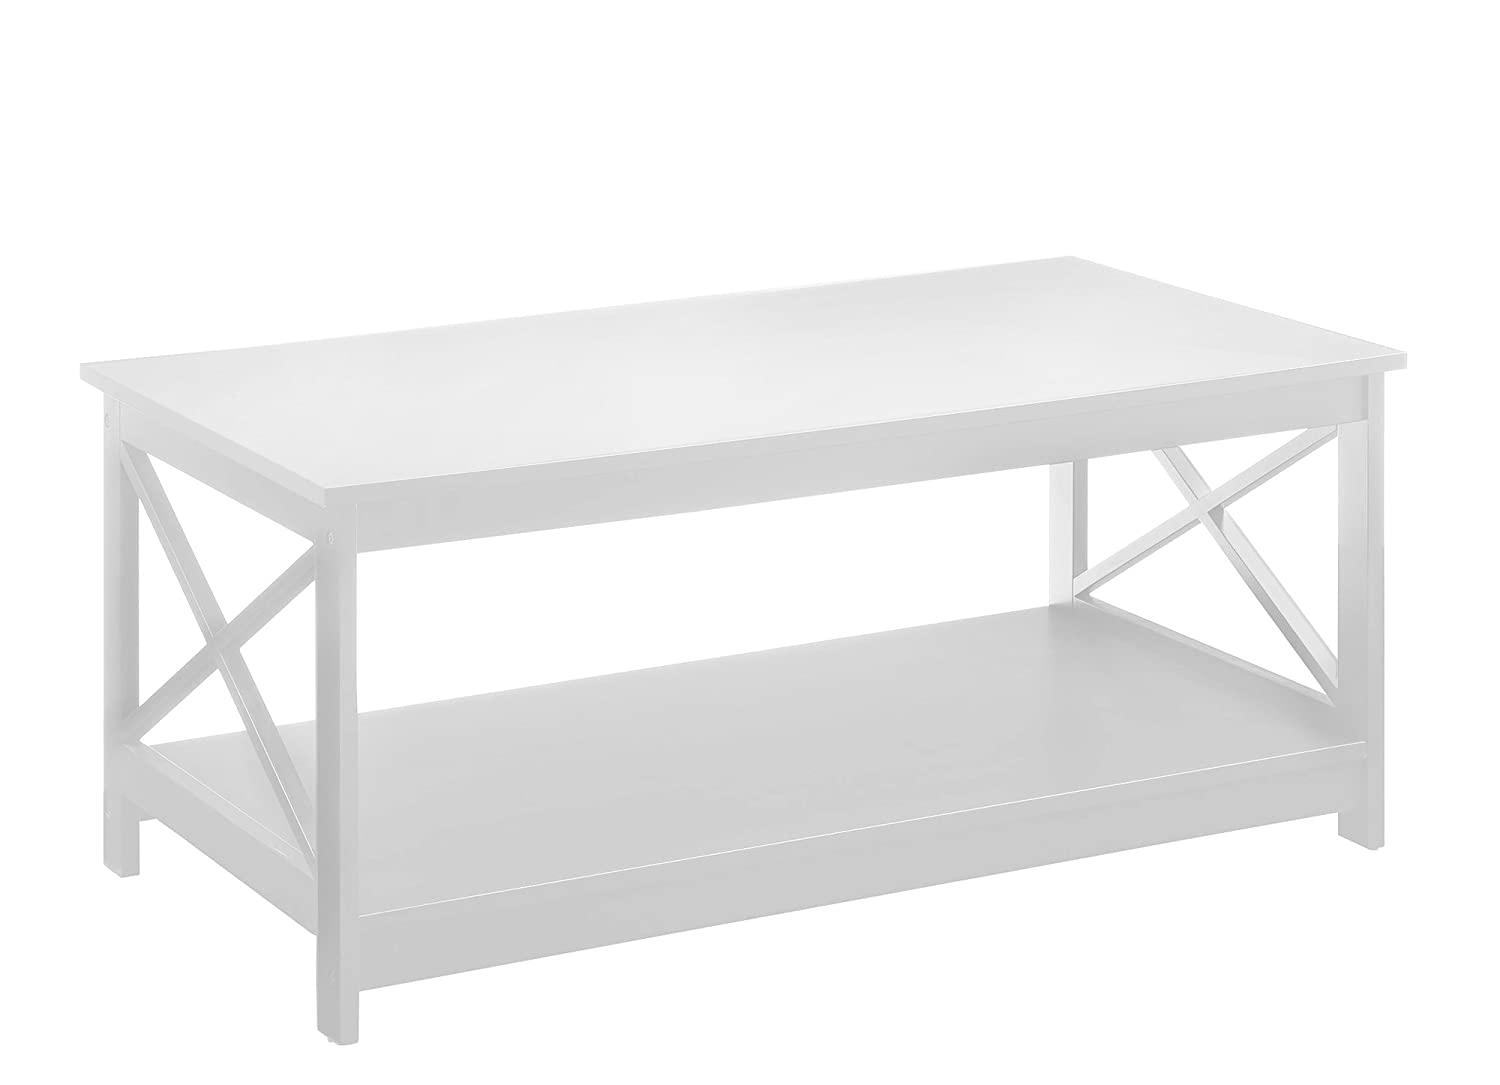 Incroyable Amazon.com: Convenience Concepts Oxford Coffee Table, White: Kitchen U0026  Dining